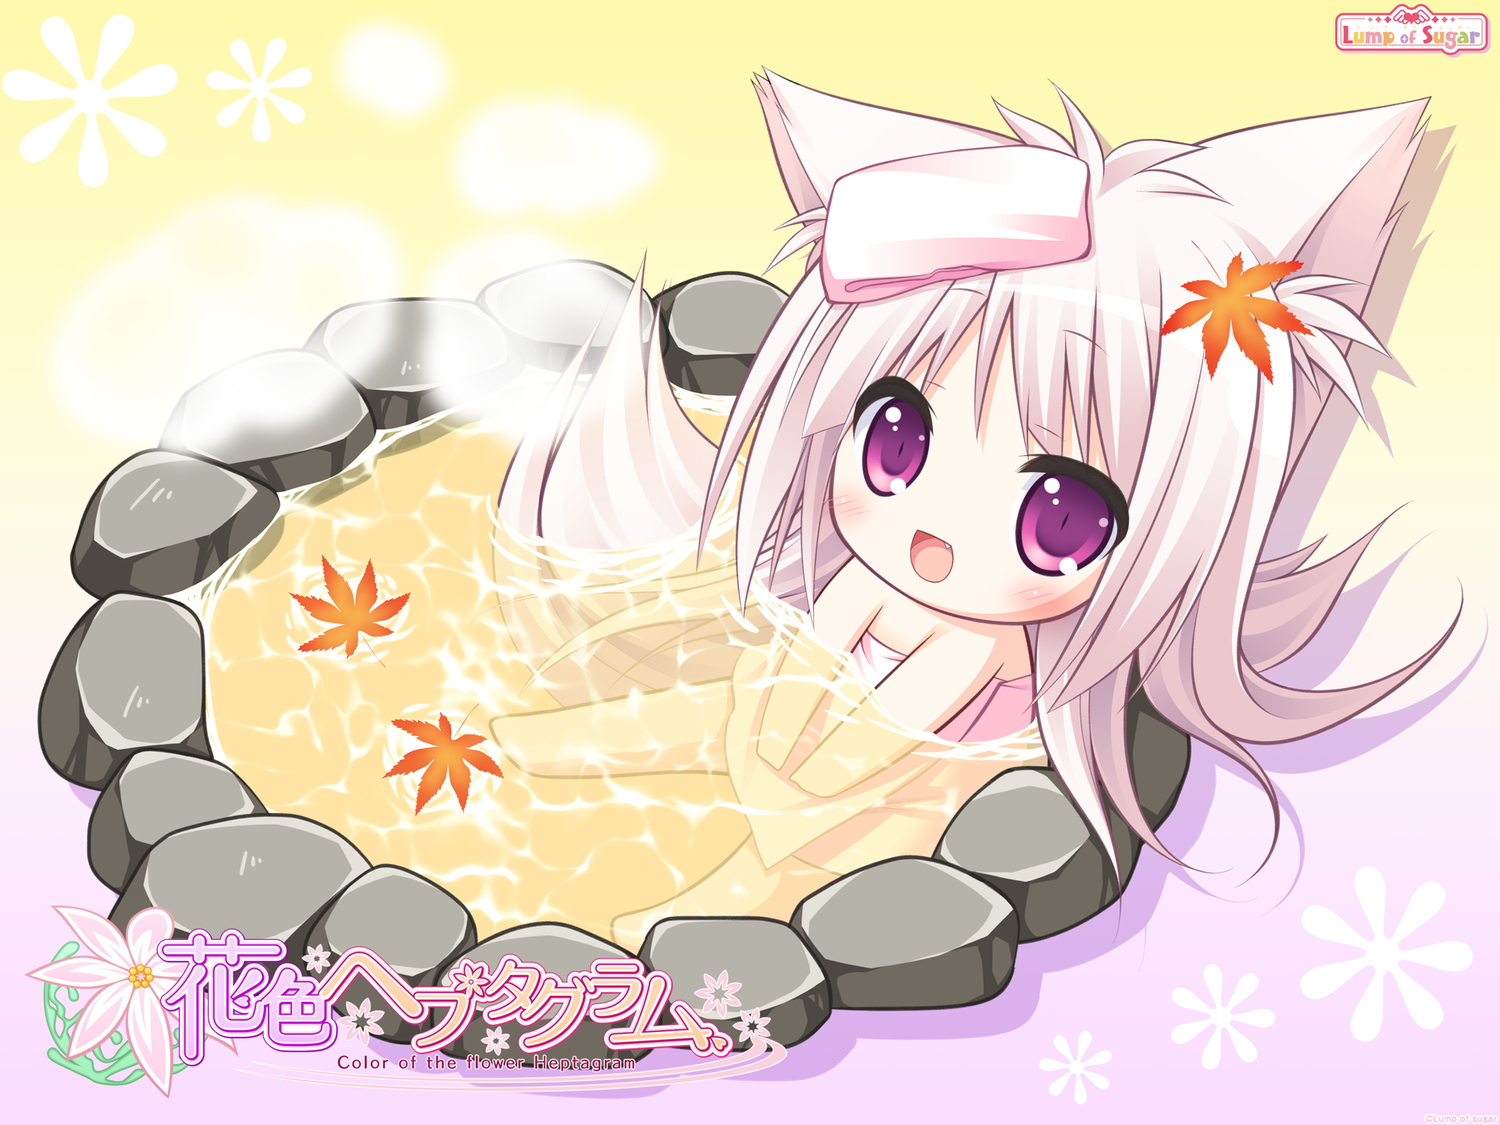 animal_ears chibi foxgirl hanairo_heptagram long_hair lump_of_sugar miyuri moekibara_fumitake onsen tail